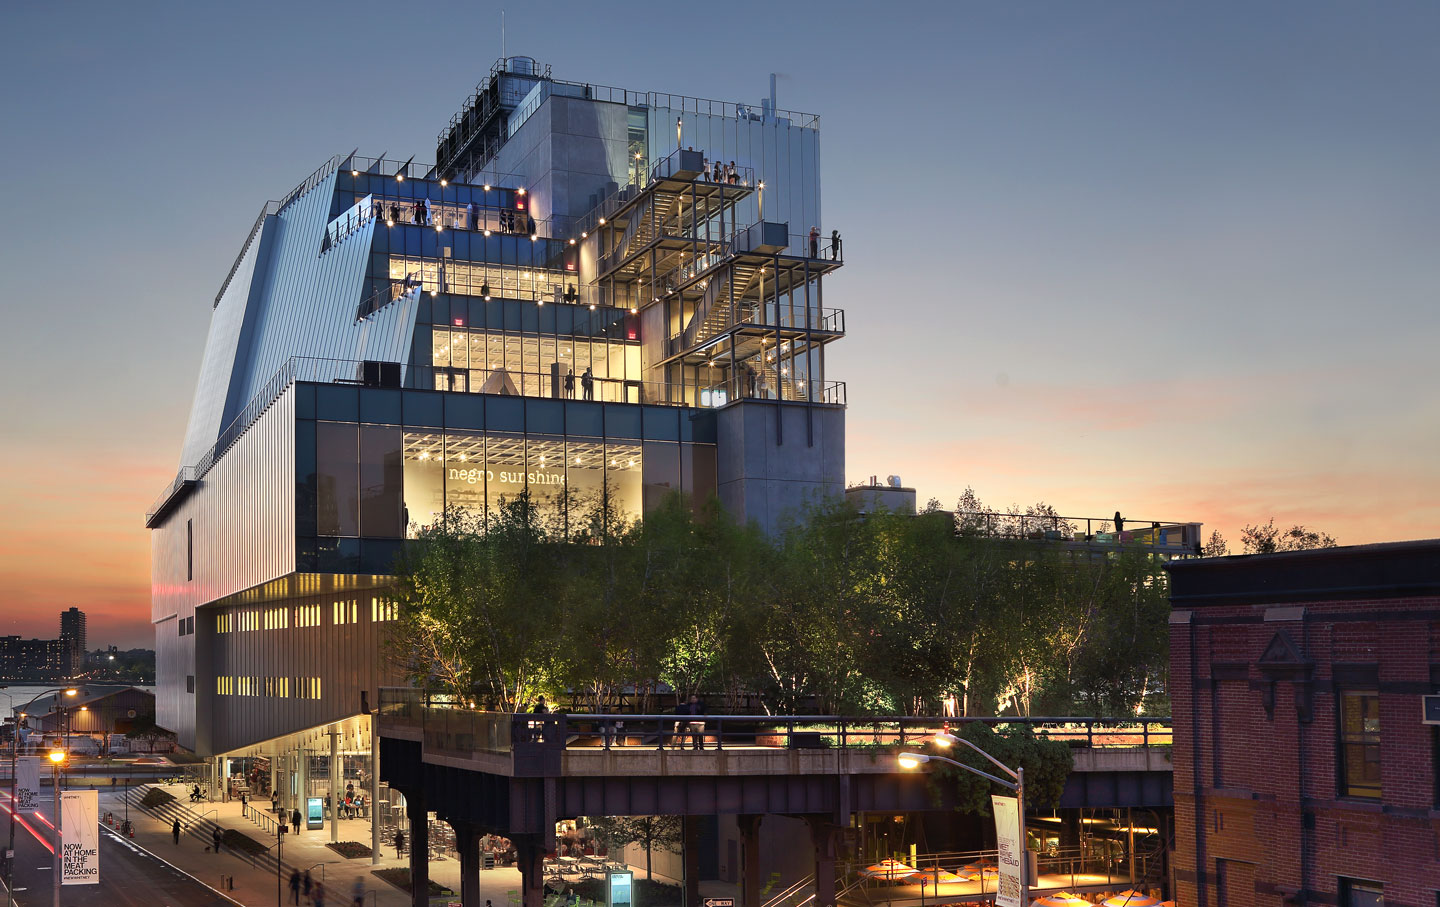 Why Has Criticism Of The Whitney Been Unmoored The Nation